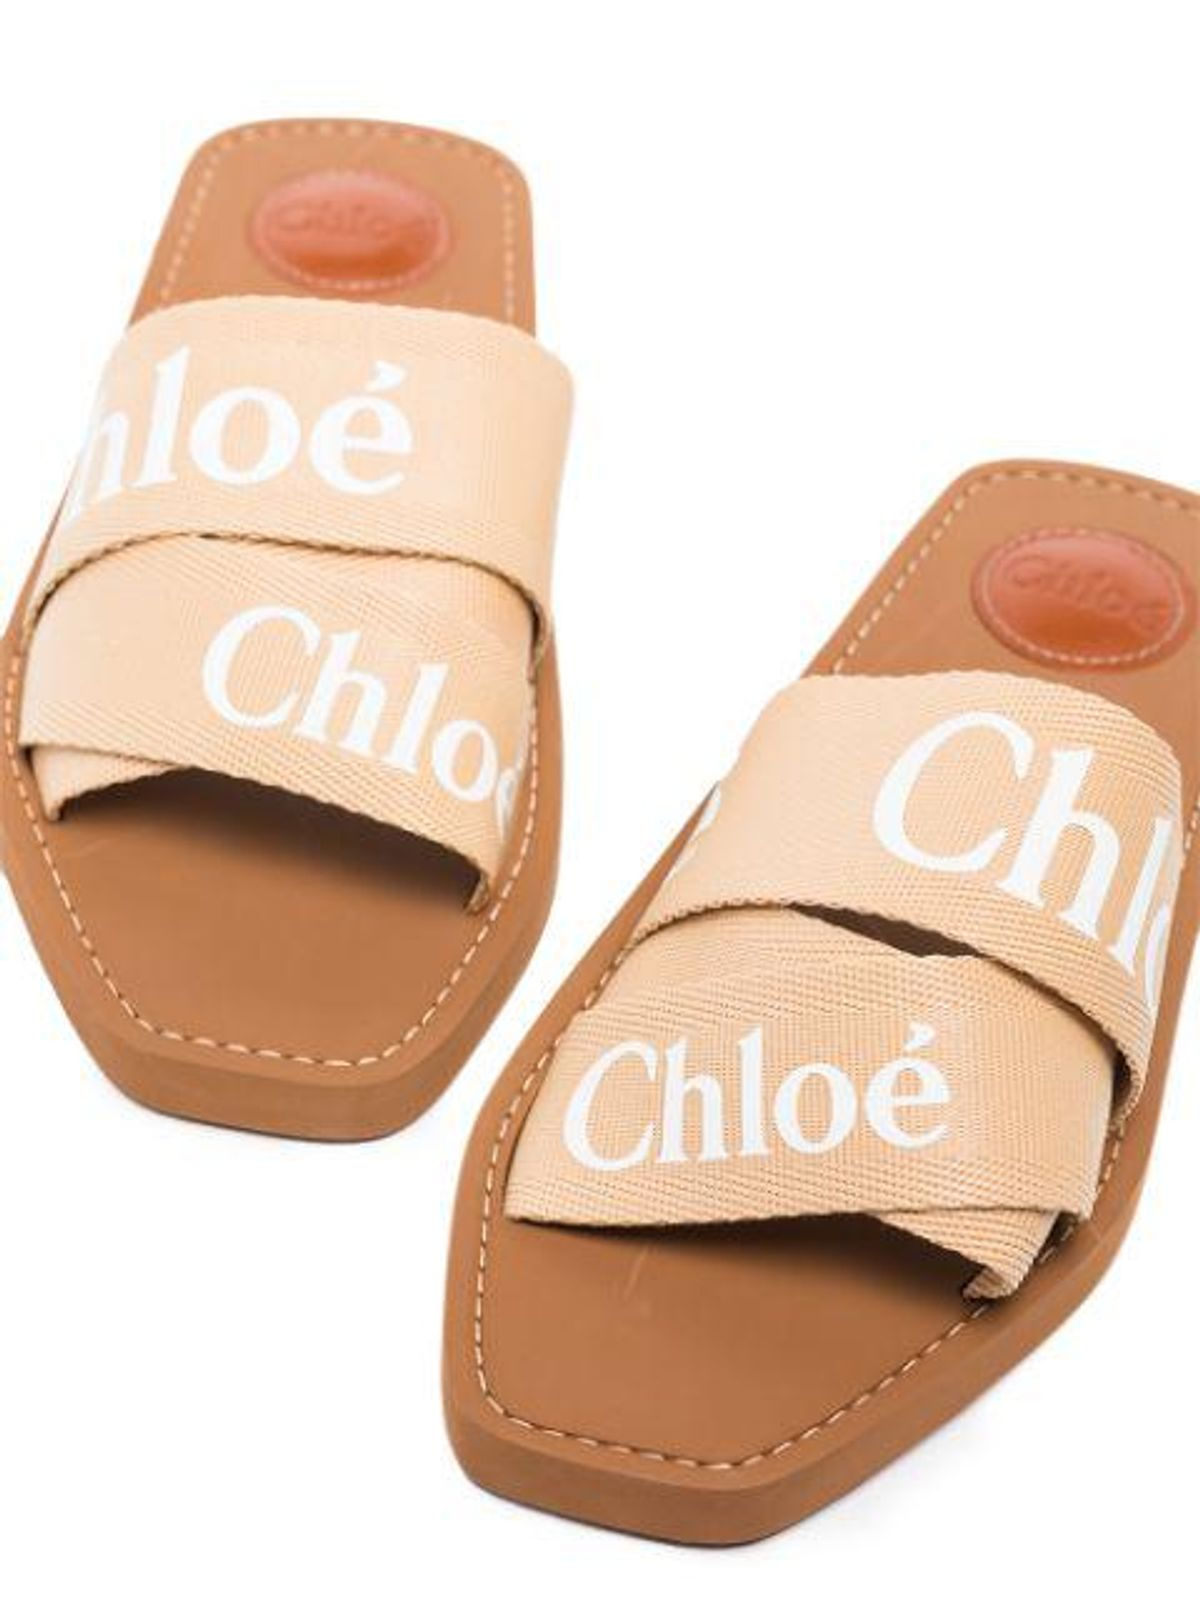 Woody Logo Strap Sandals in Soft Tan